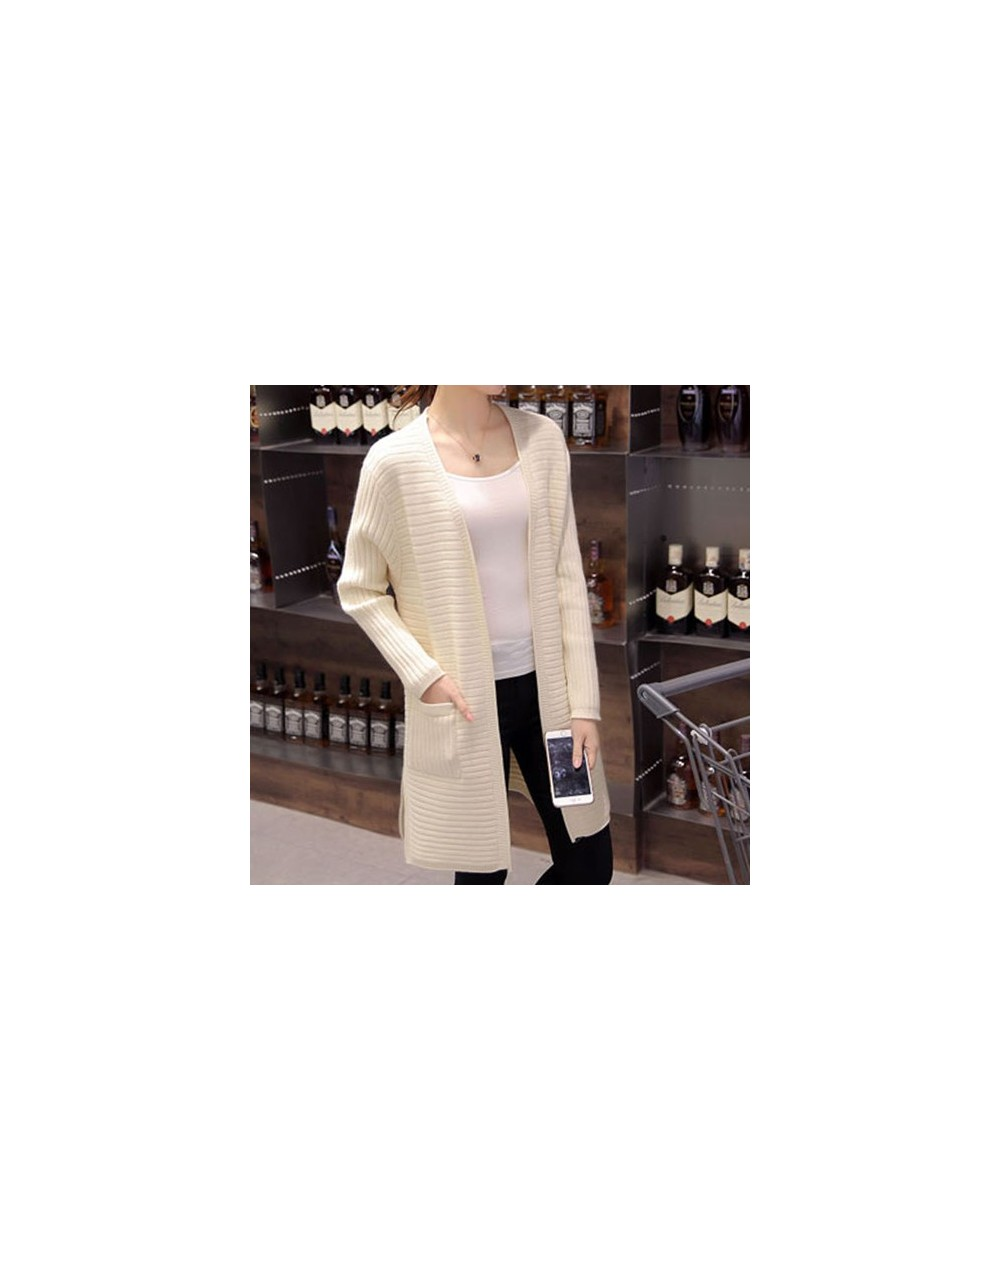 Cheap wholesale 2018 new autumn winter Hot selling women's fashion casual warm nice Sweater L594 - Beige - 493031593805-1